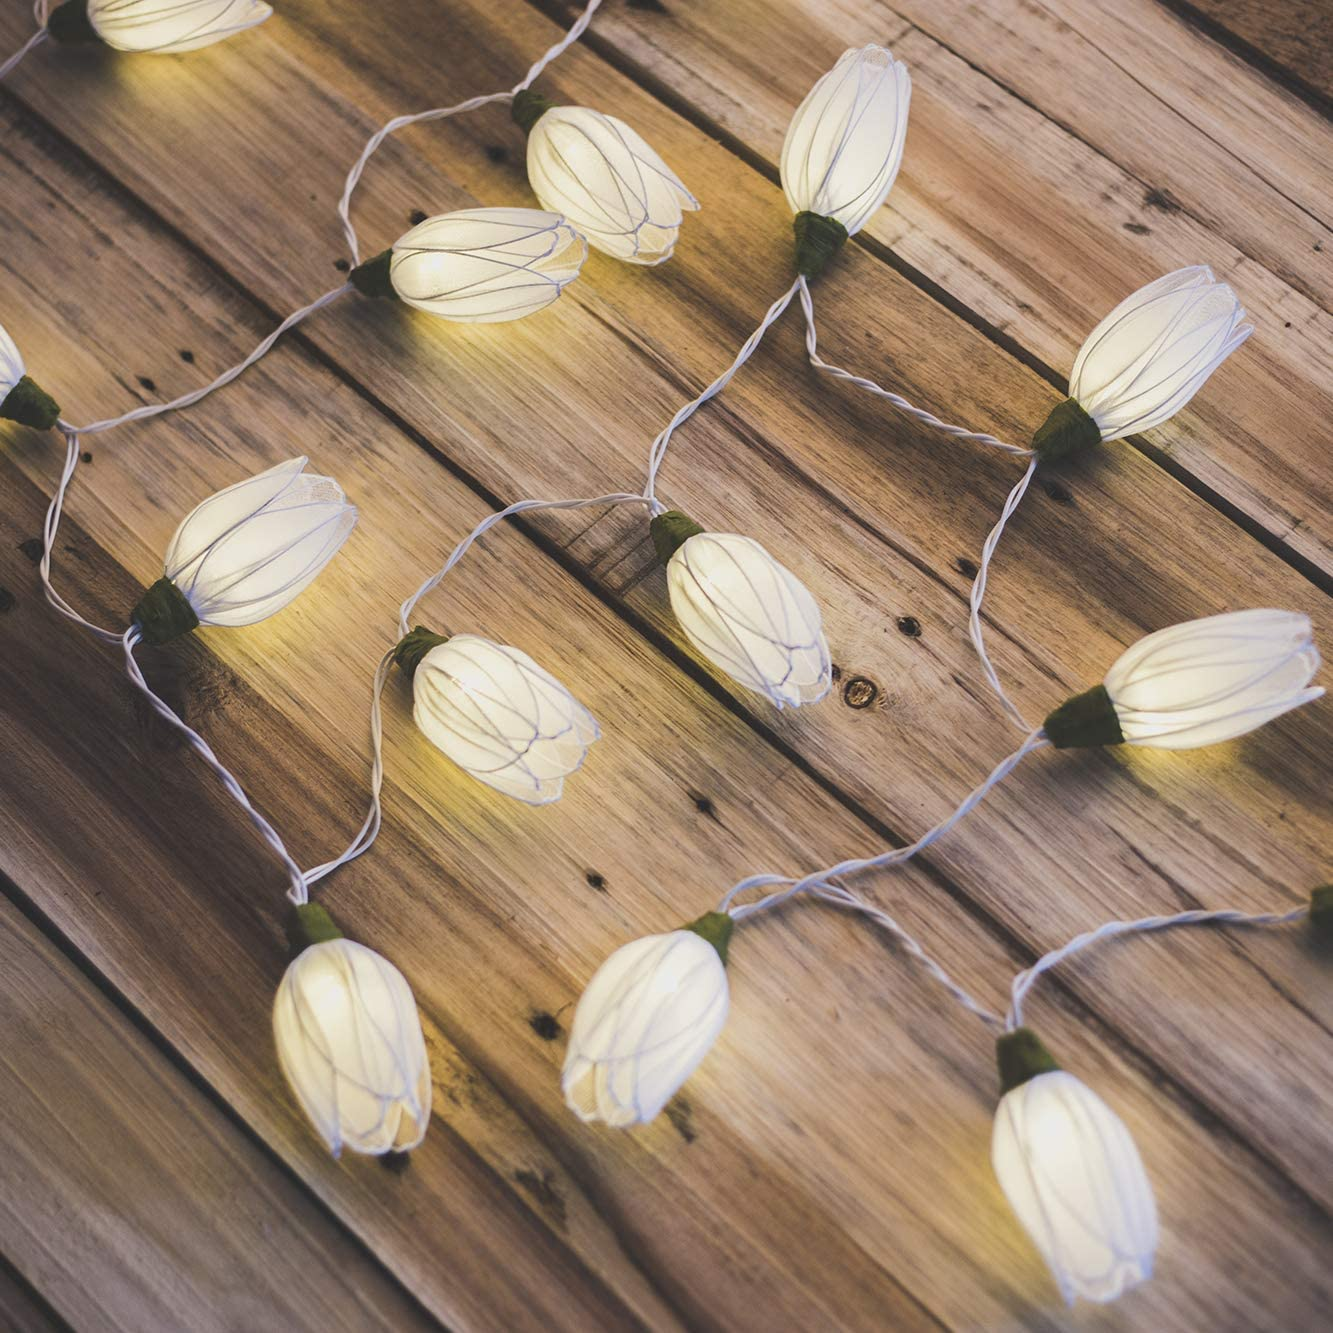 Flowerglow White Tulip Flower Battery Operated LED String Lights - Warm White LED Bulbs with A 50,000 Hour Lifespan - Luxury Handmade Fairy Lights for Home, Bedroom, Birthday, Wedding, Christmas